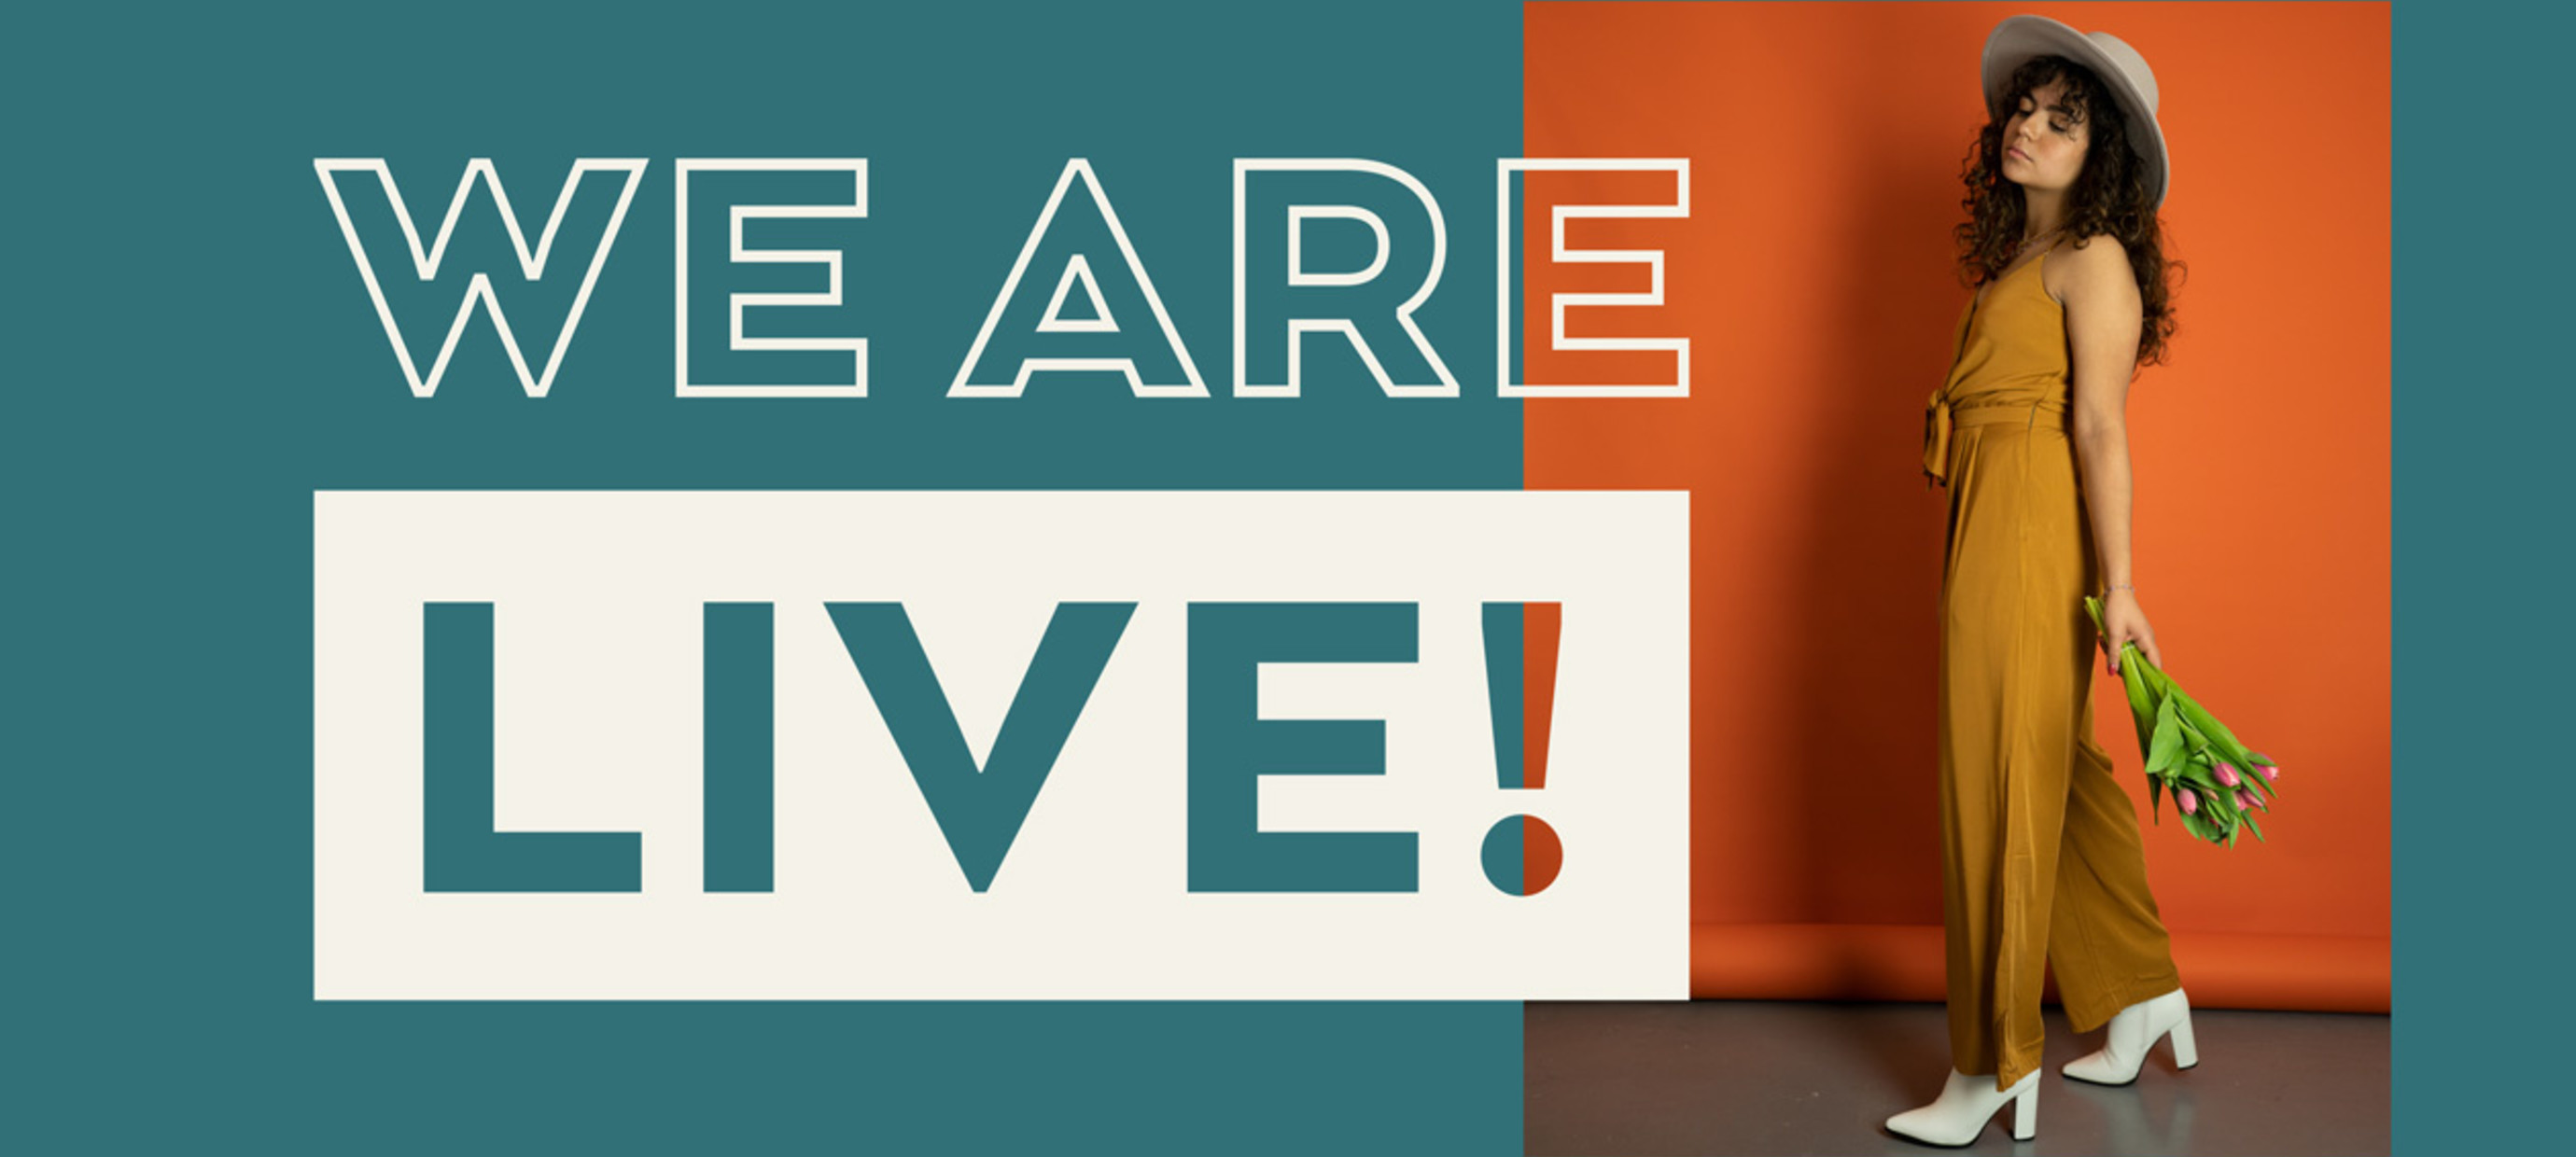 We are live!